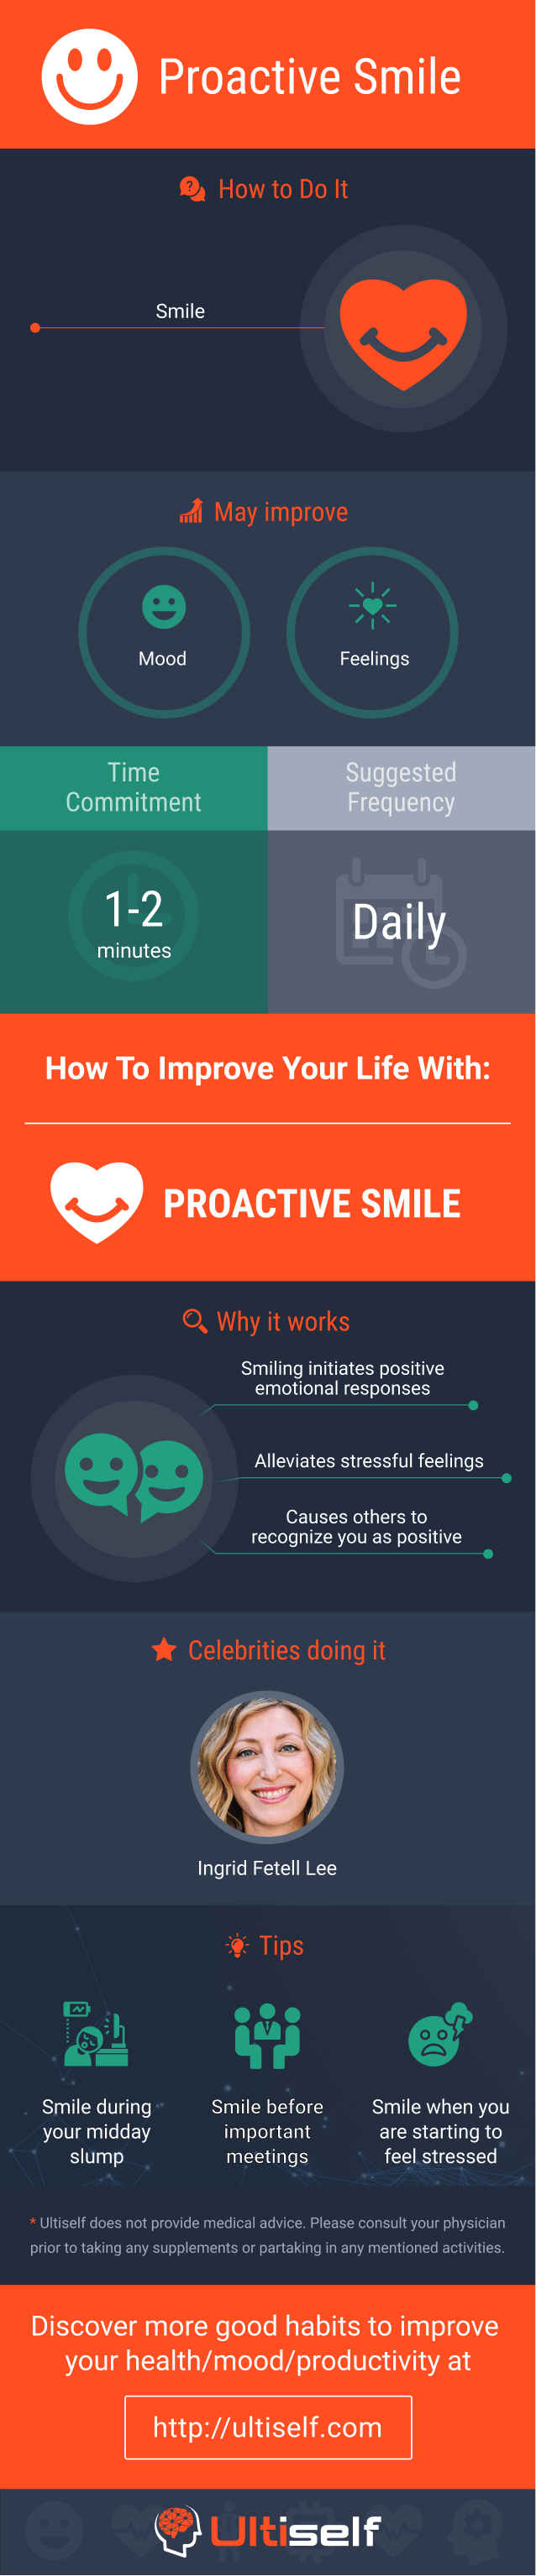 Proactive smile infographic